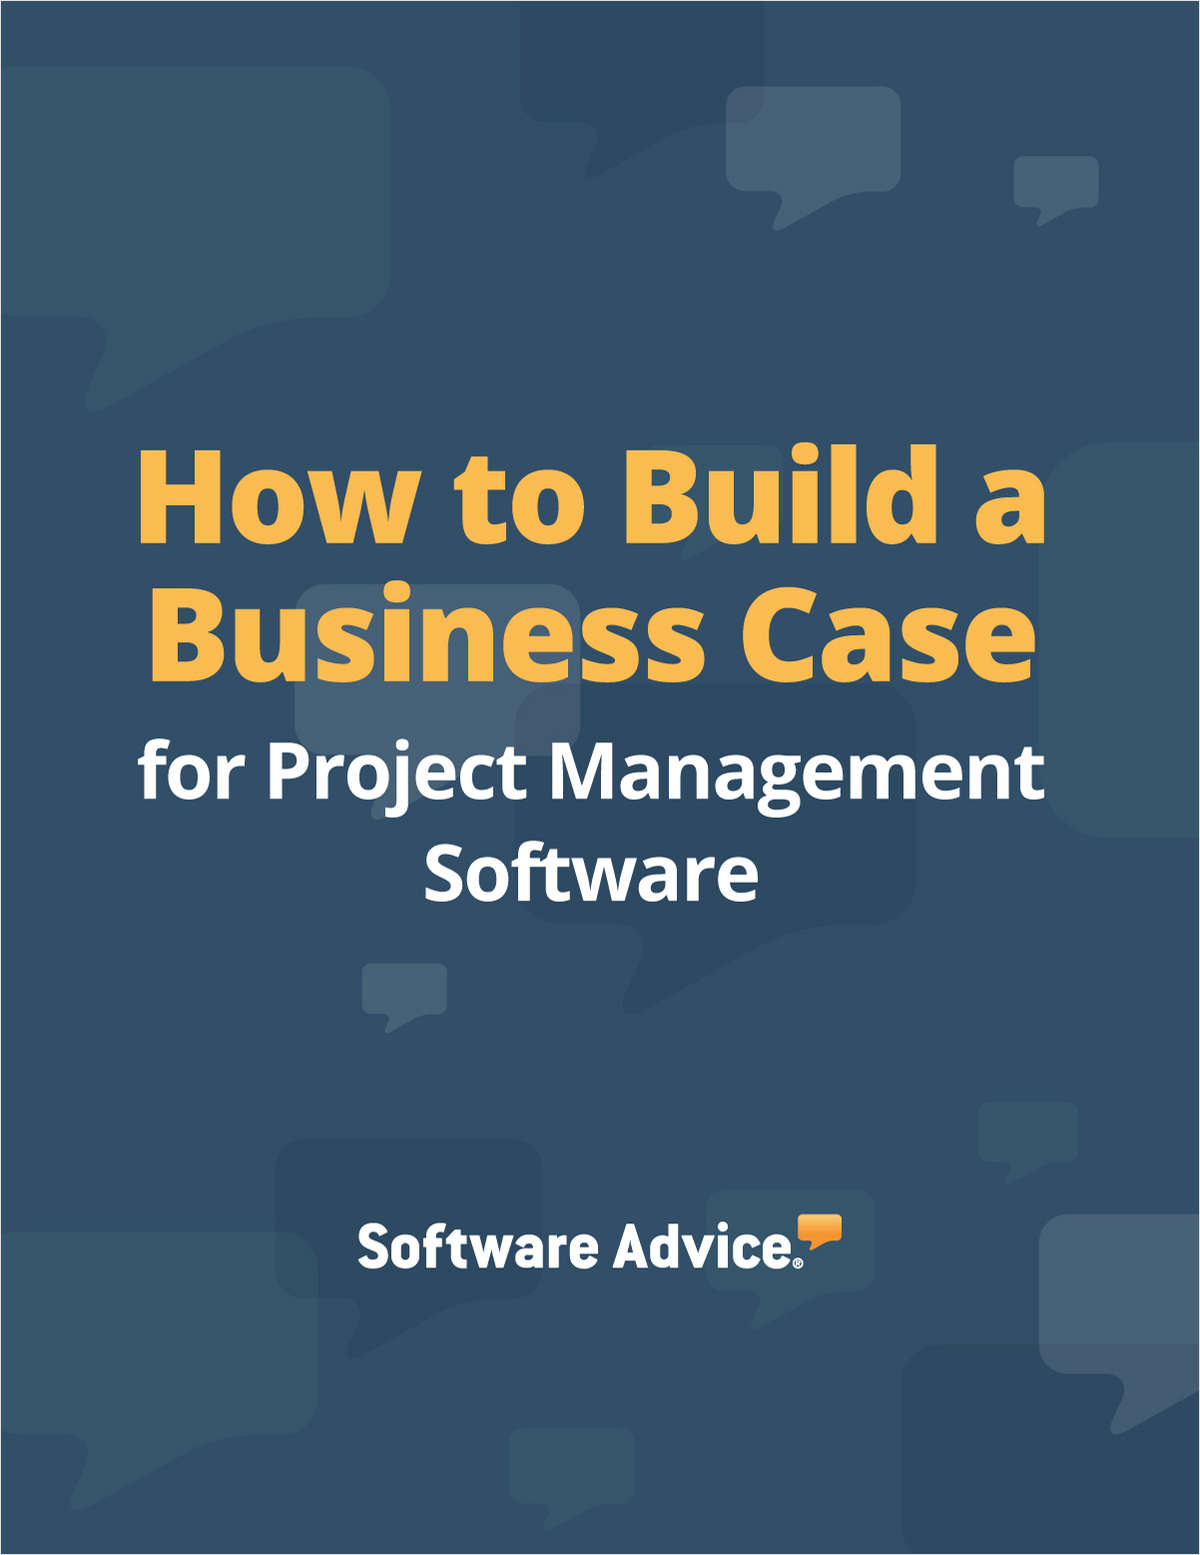 How to Build a Business Case for Project Management Software